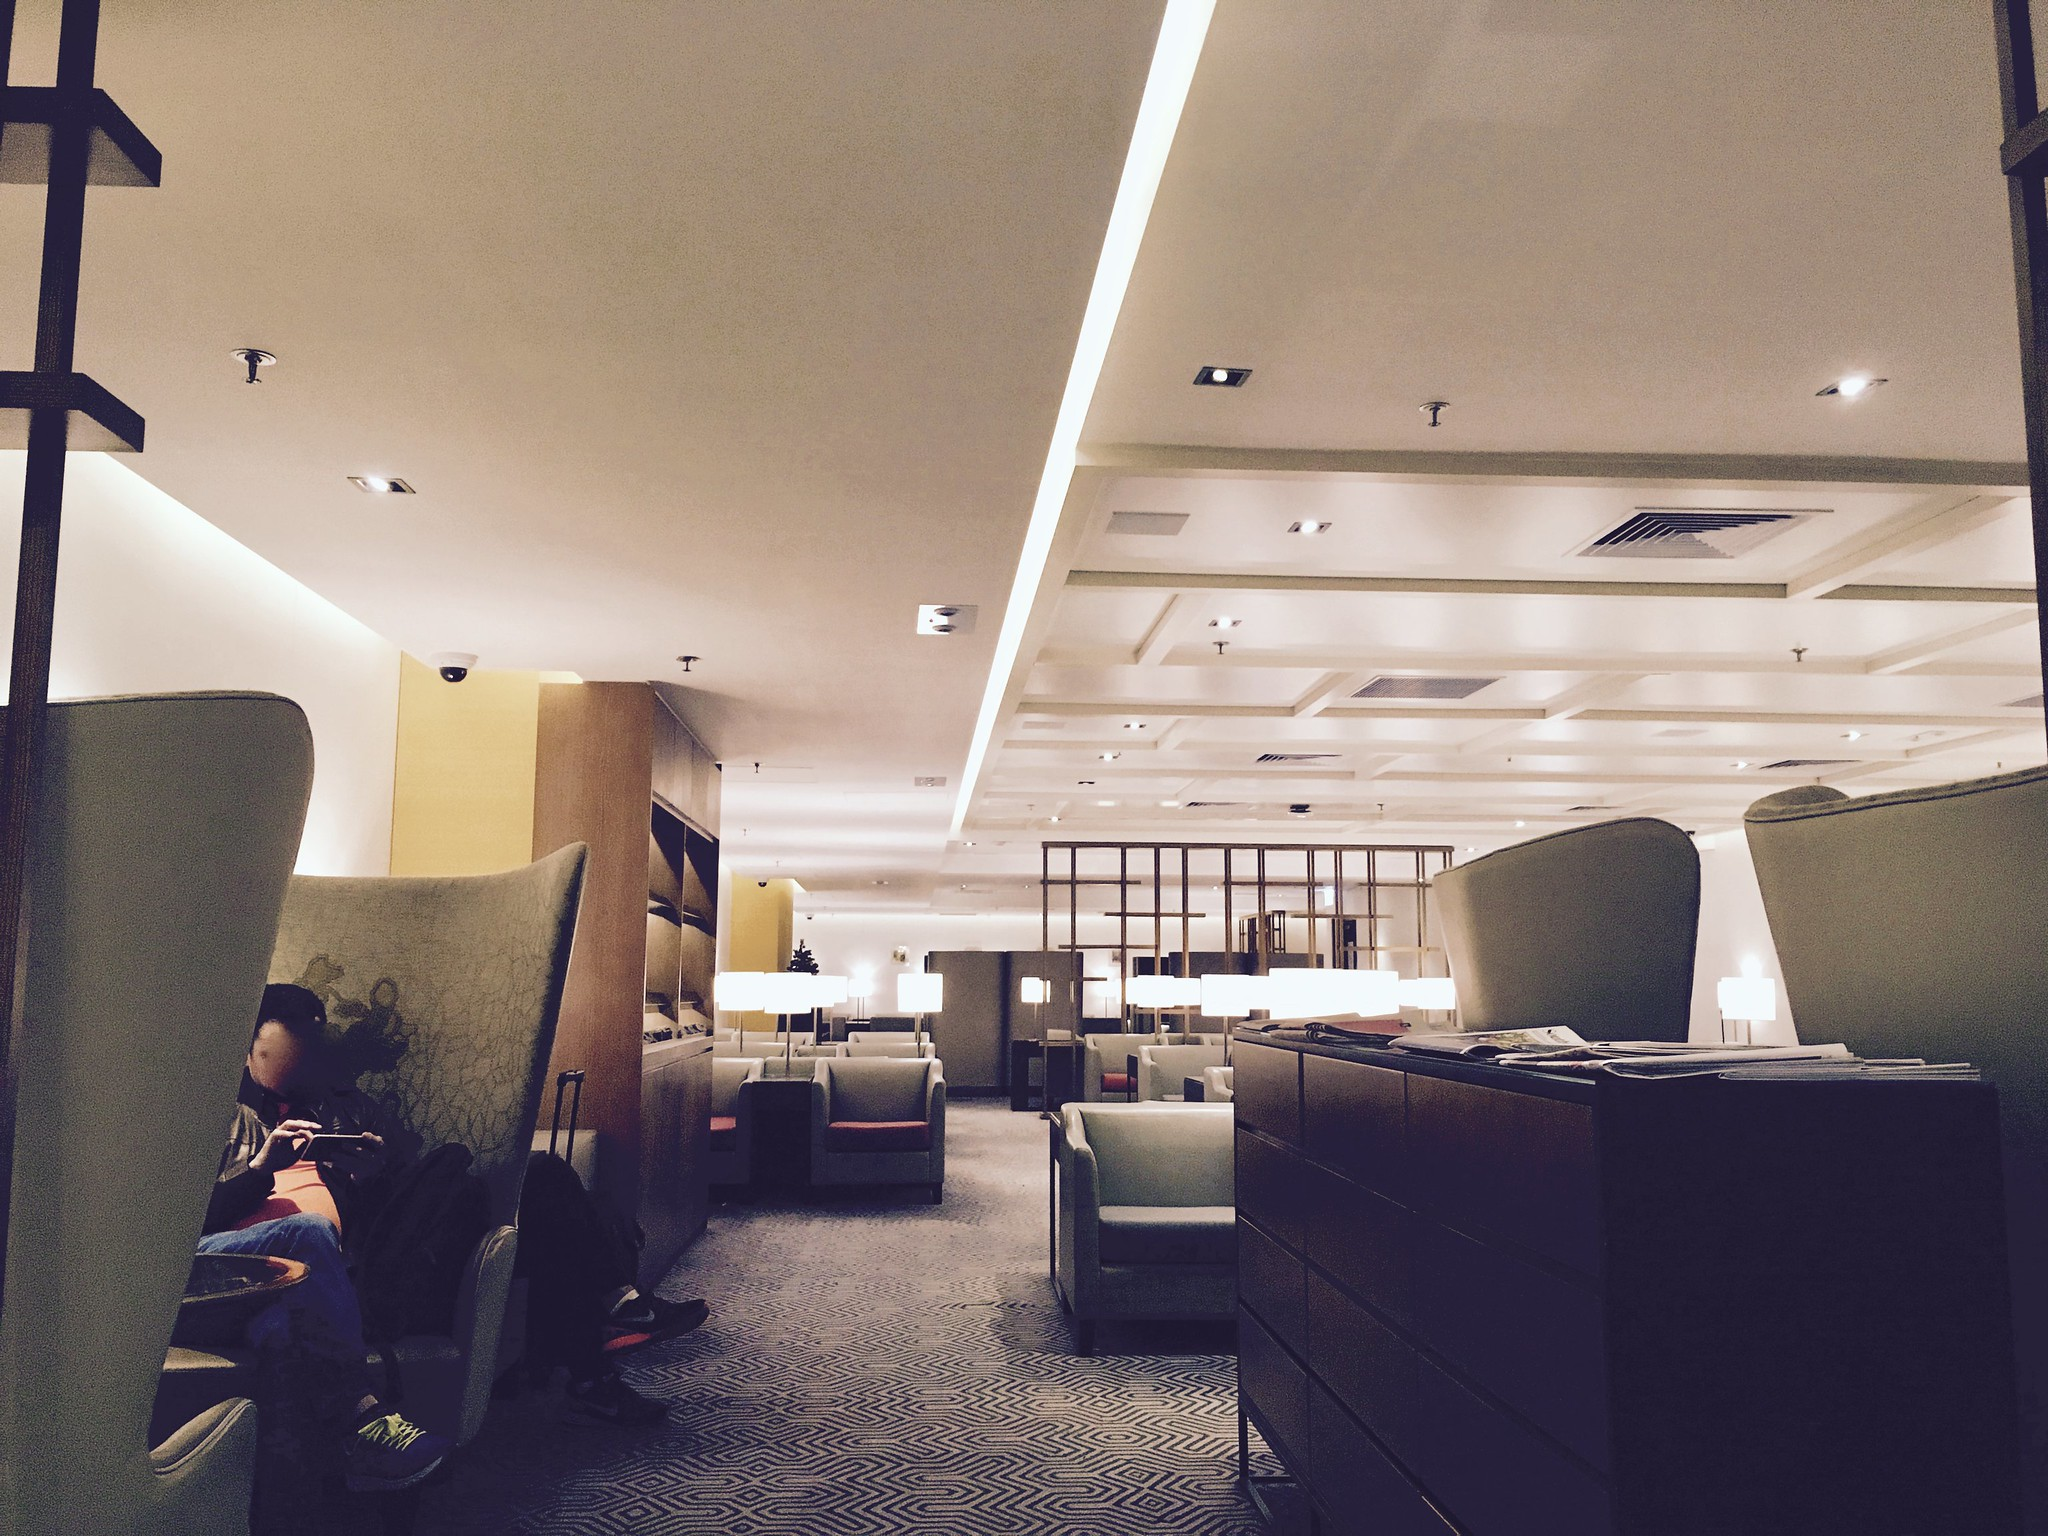 Hong Kong International Airport Singapore Airlines SilverKris Business Lounge